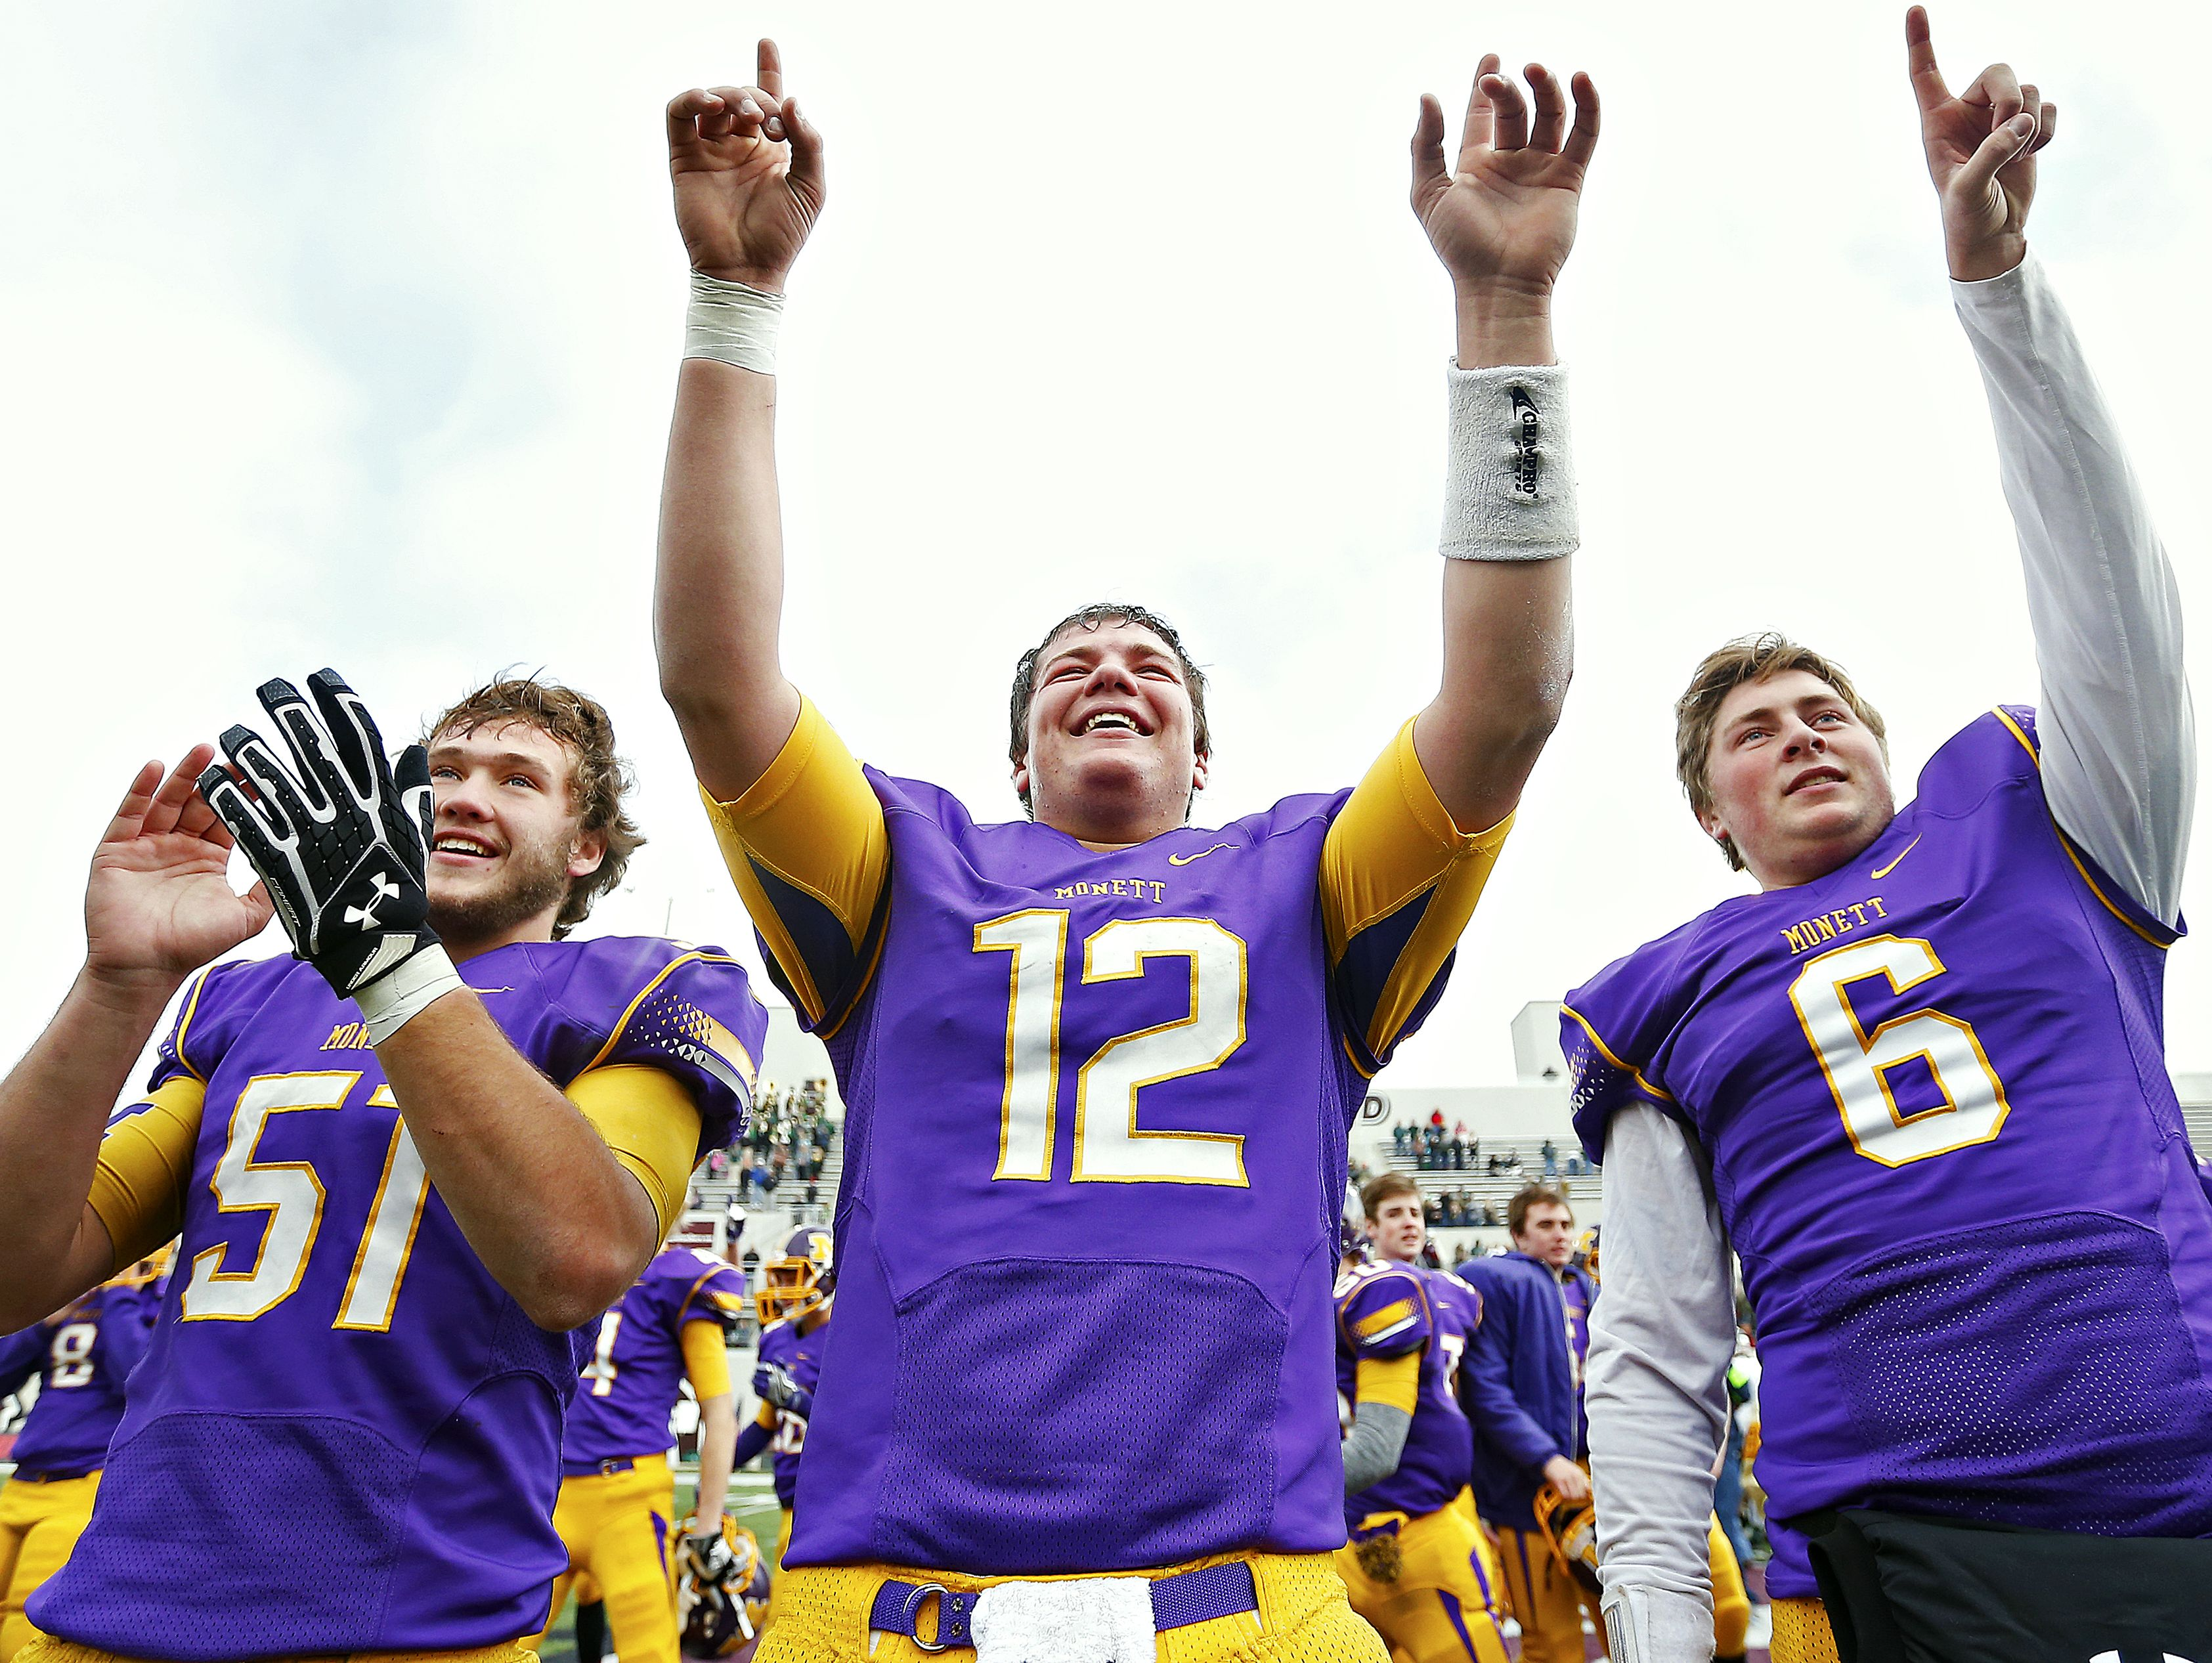 Monett High School center Caleb Hilton (51) and quarterbacks Ian Meyer (12) and Tommy Sangston (6) celebrate after the end of the MSHSAA Class 3 State Championship Game between the Monett High School Cubs and the Maryville High School Spoofhounds at Robert W. Plaster Stadium in Springfield, Mo. on Nov. 26, 2016. The Monett Cubs won the game 27-18.